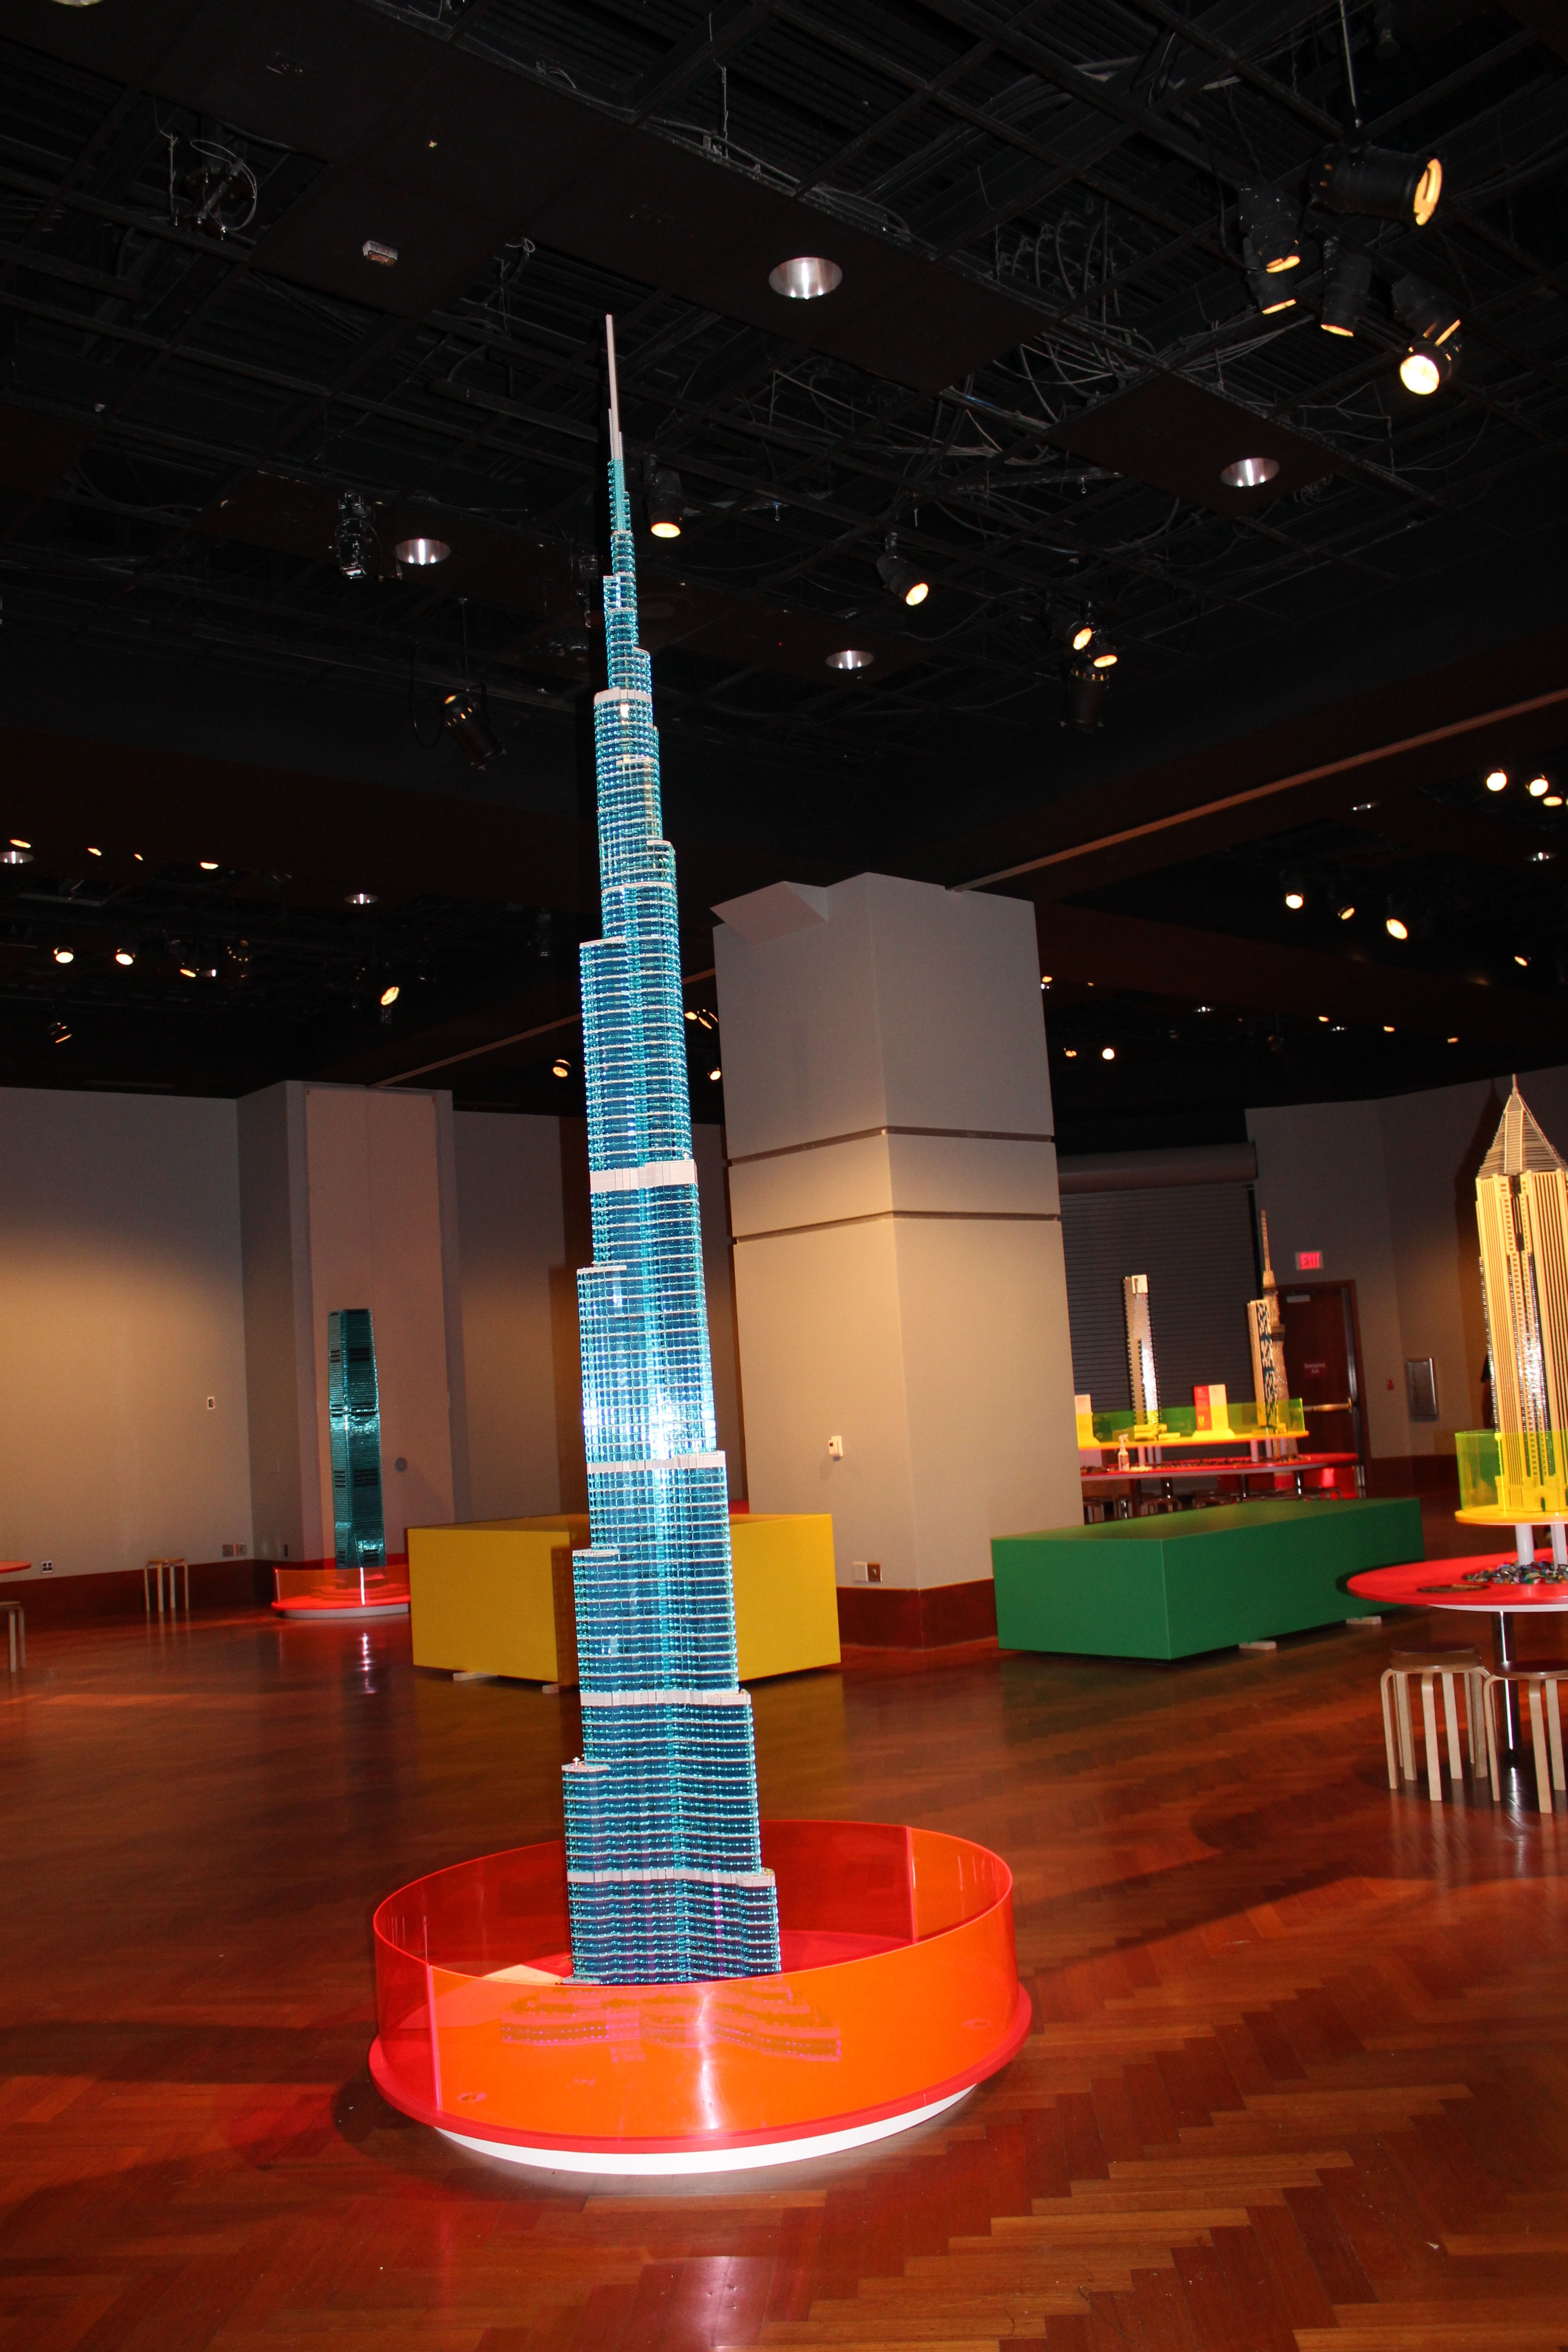 Photo shows a lego replica of the Burj Khalifa